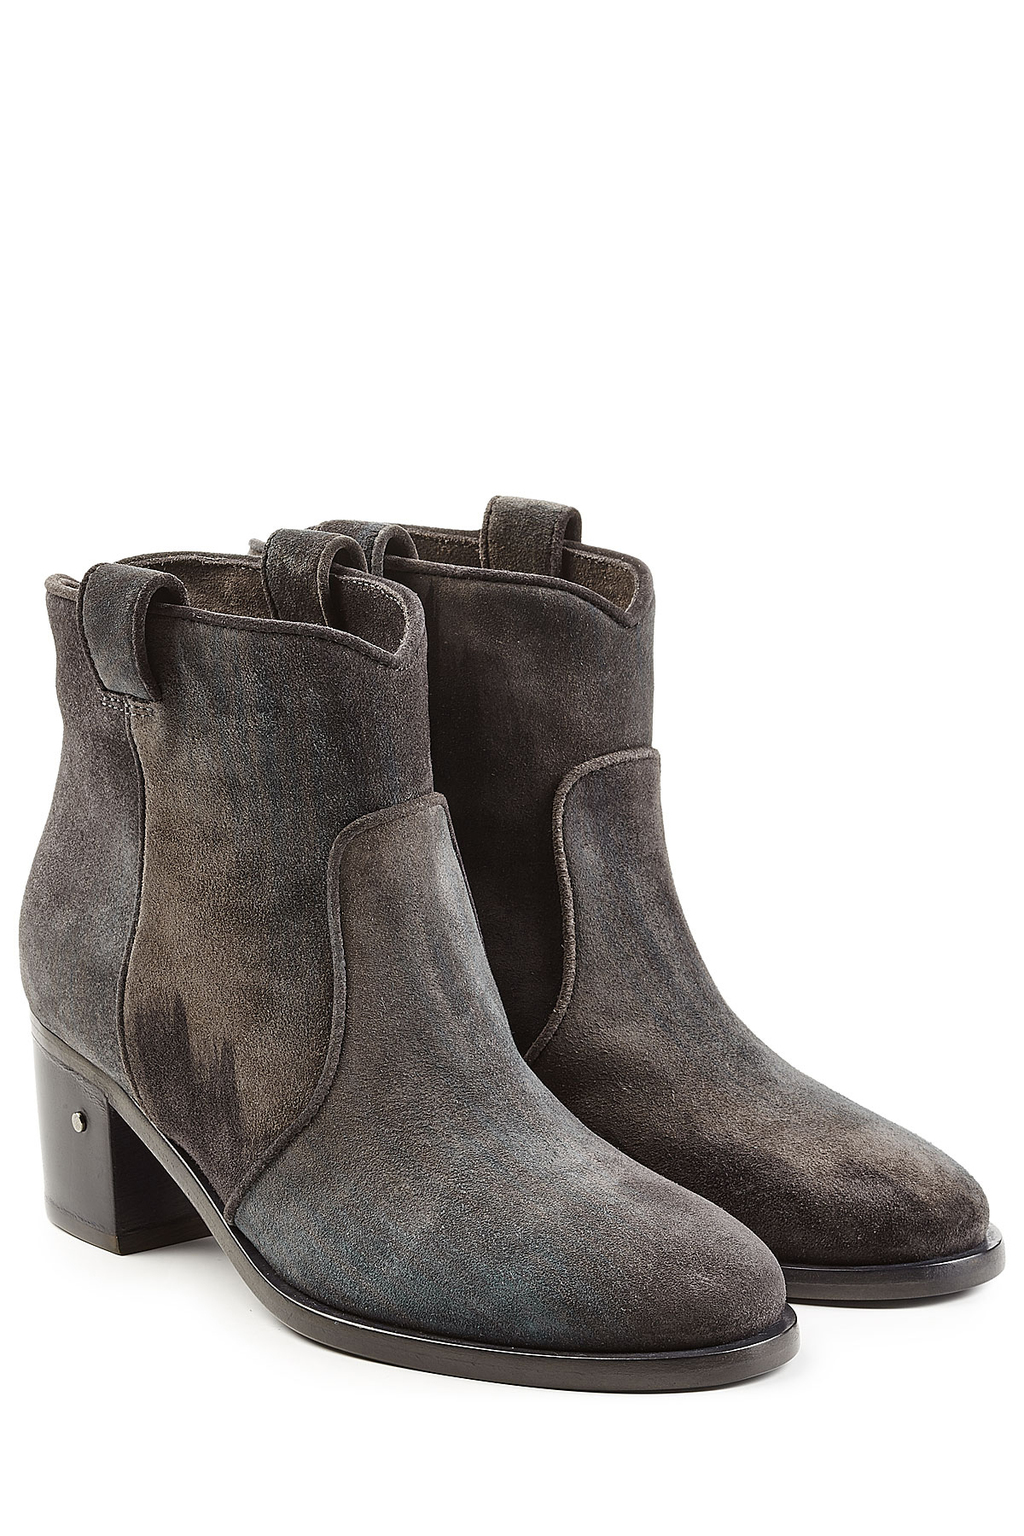 Suede Ankle Boots Grey - predominant colour: charcoal; occasions: casual; material: suede; heel height: mid; heel: block; toe: round toe; boot length: ankle boot; style: standard; finish: plain; pattern: plain; season: s/s 2016